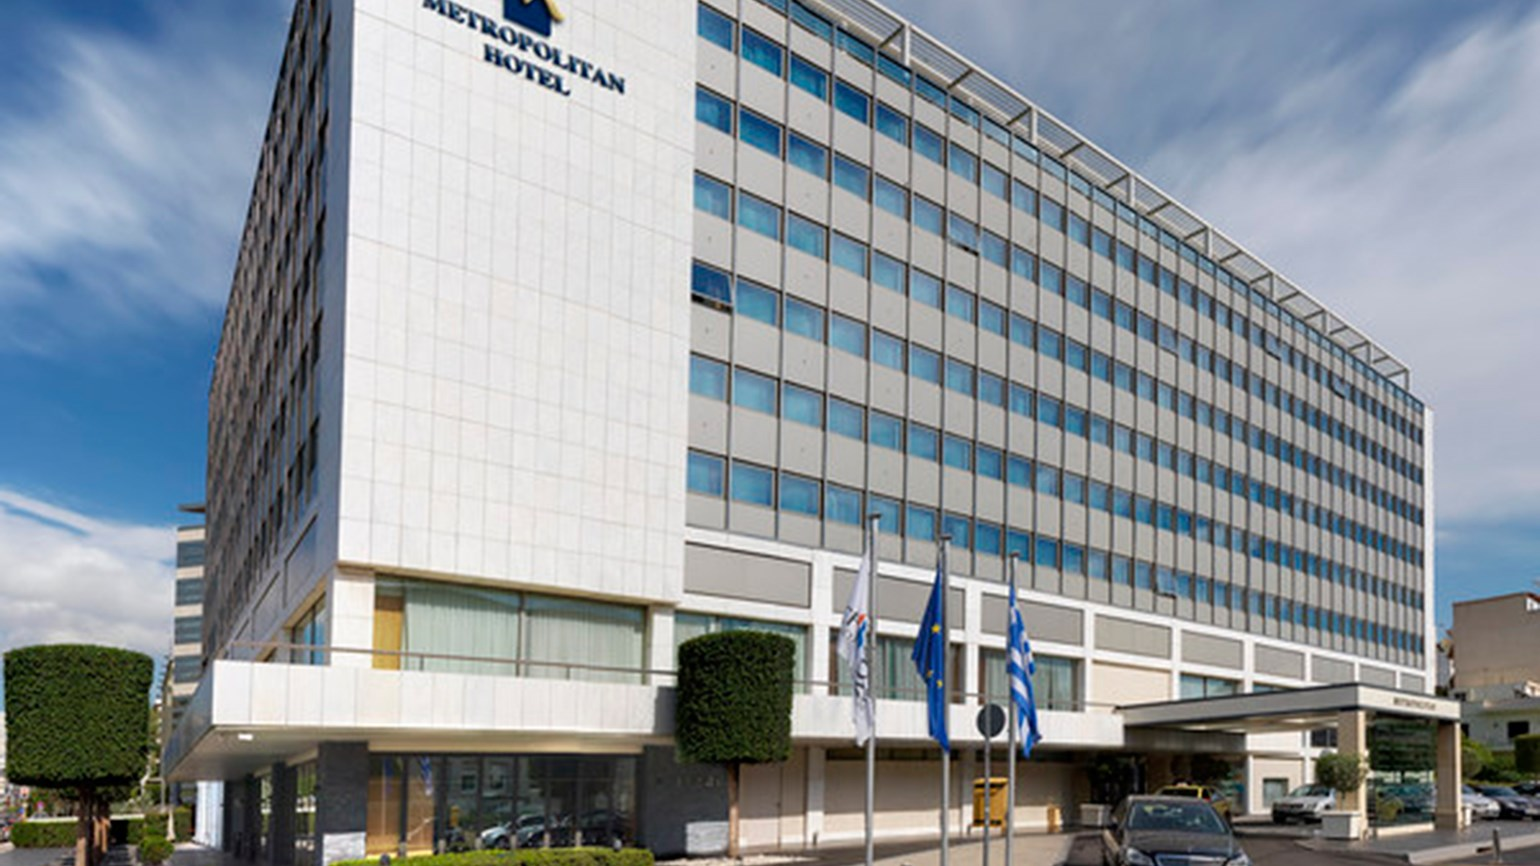 Metropolitan Hotel Athens to fly Marriott flag